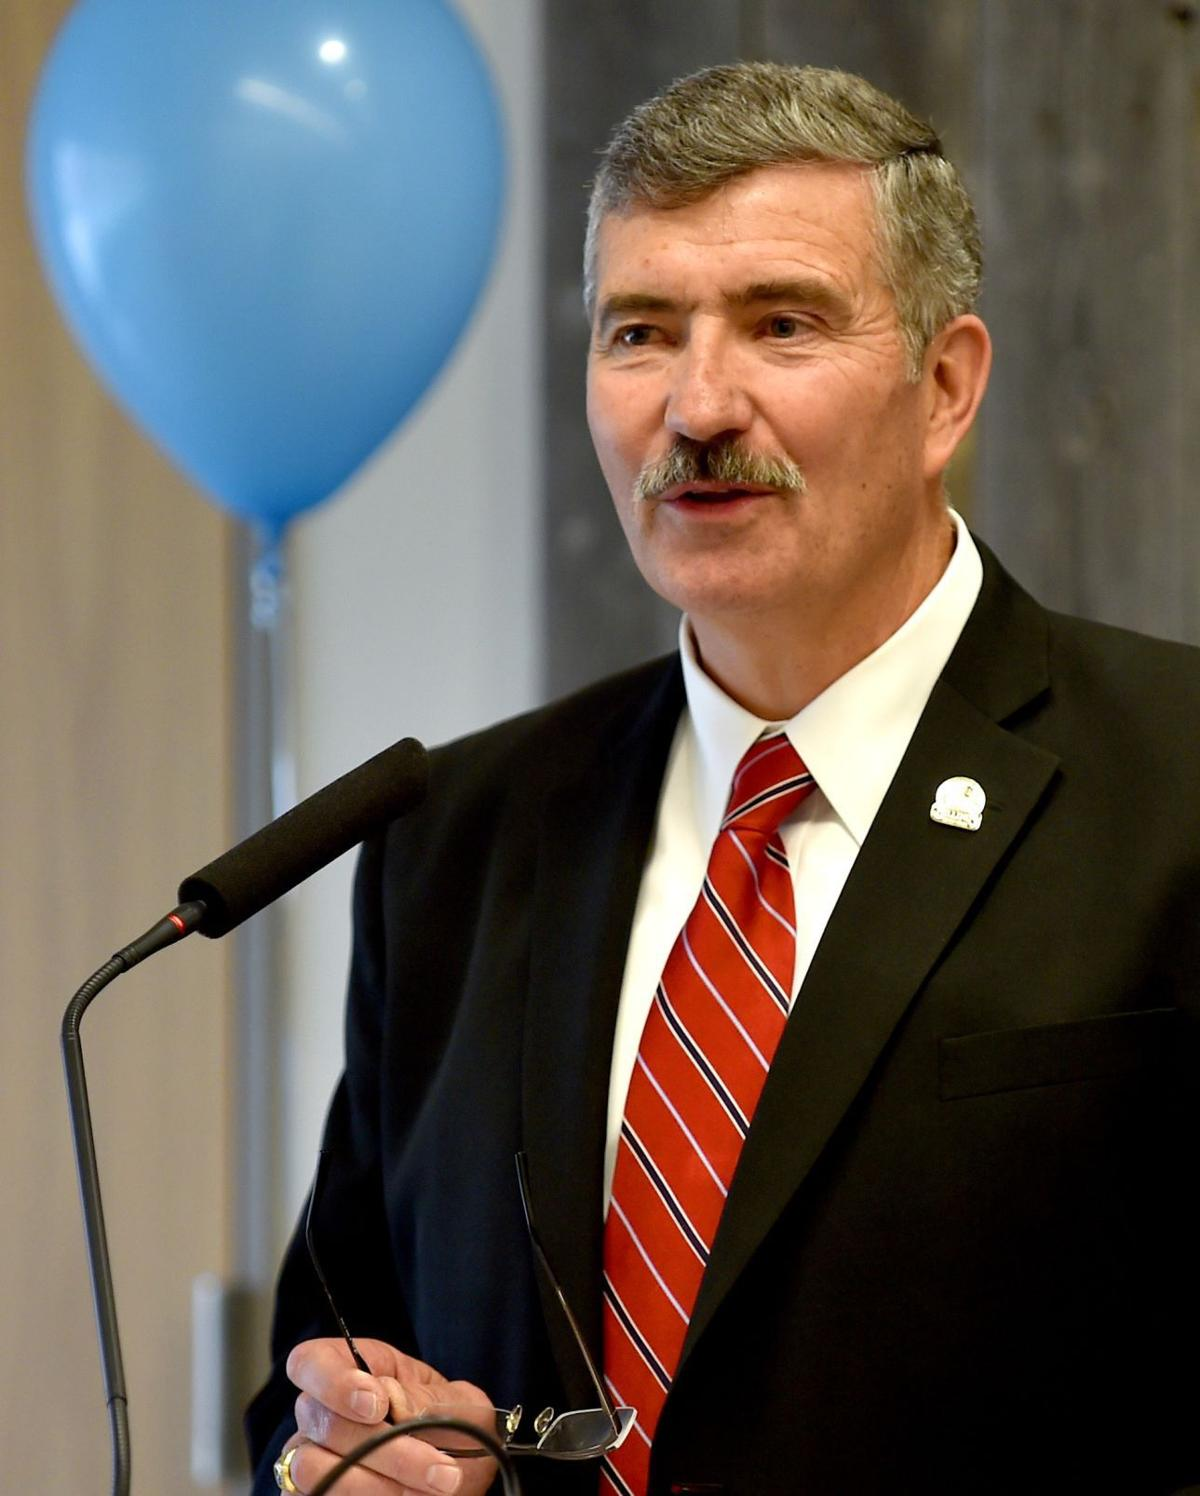 Mayor Tom Hanel